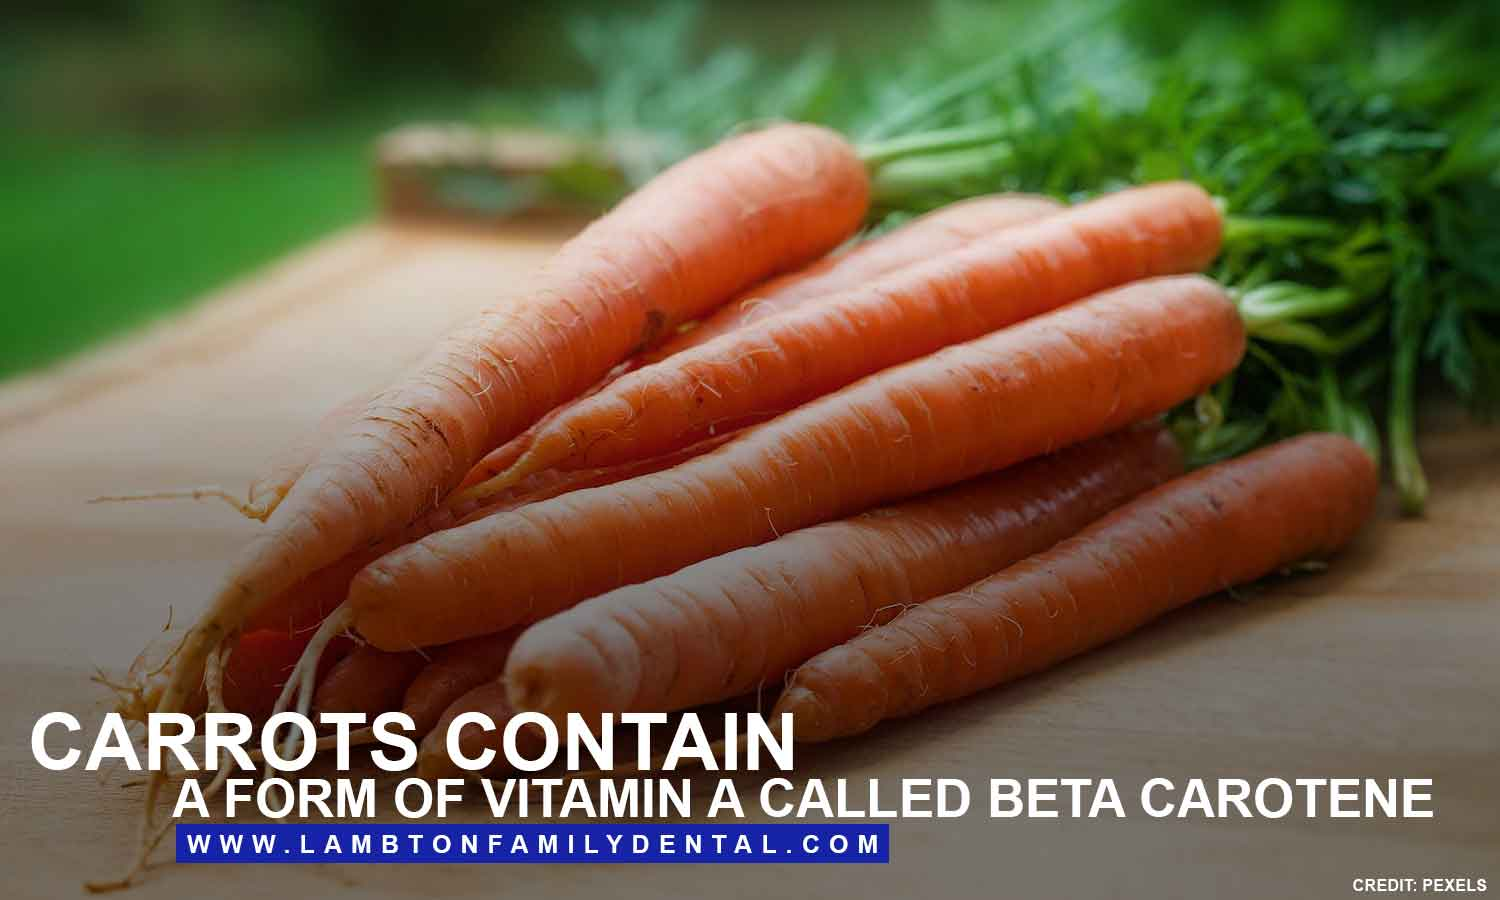 Carrots contain a form of vitamin A called beta carotene